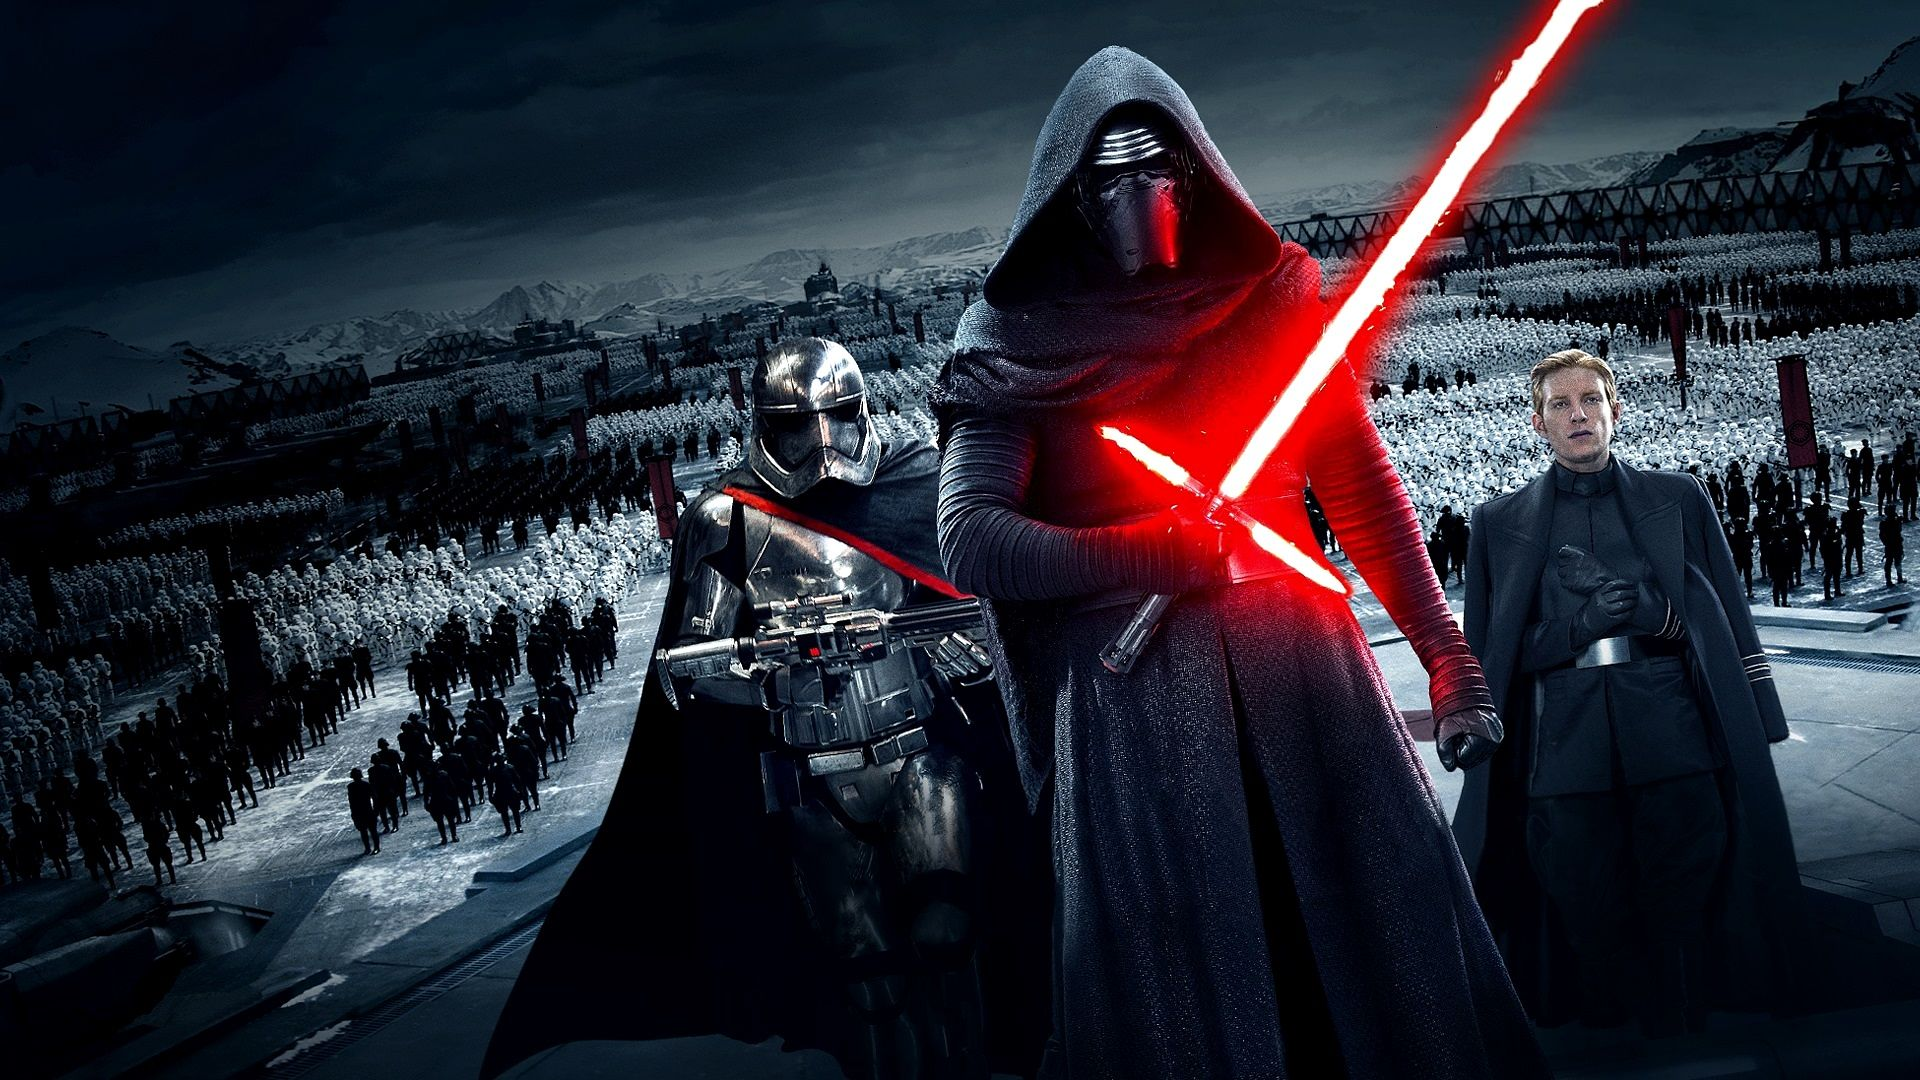 Kylo Ren Star Wars The Force Awakens The First Order